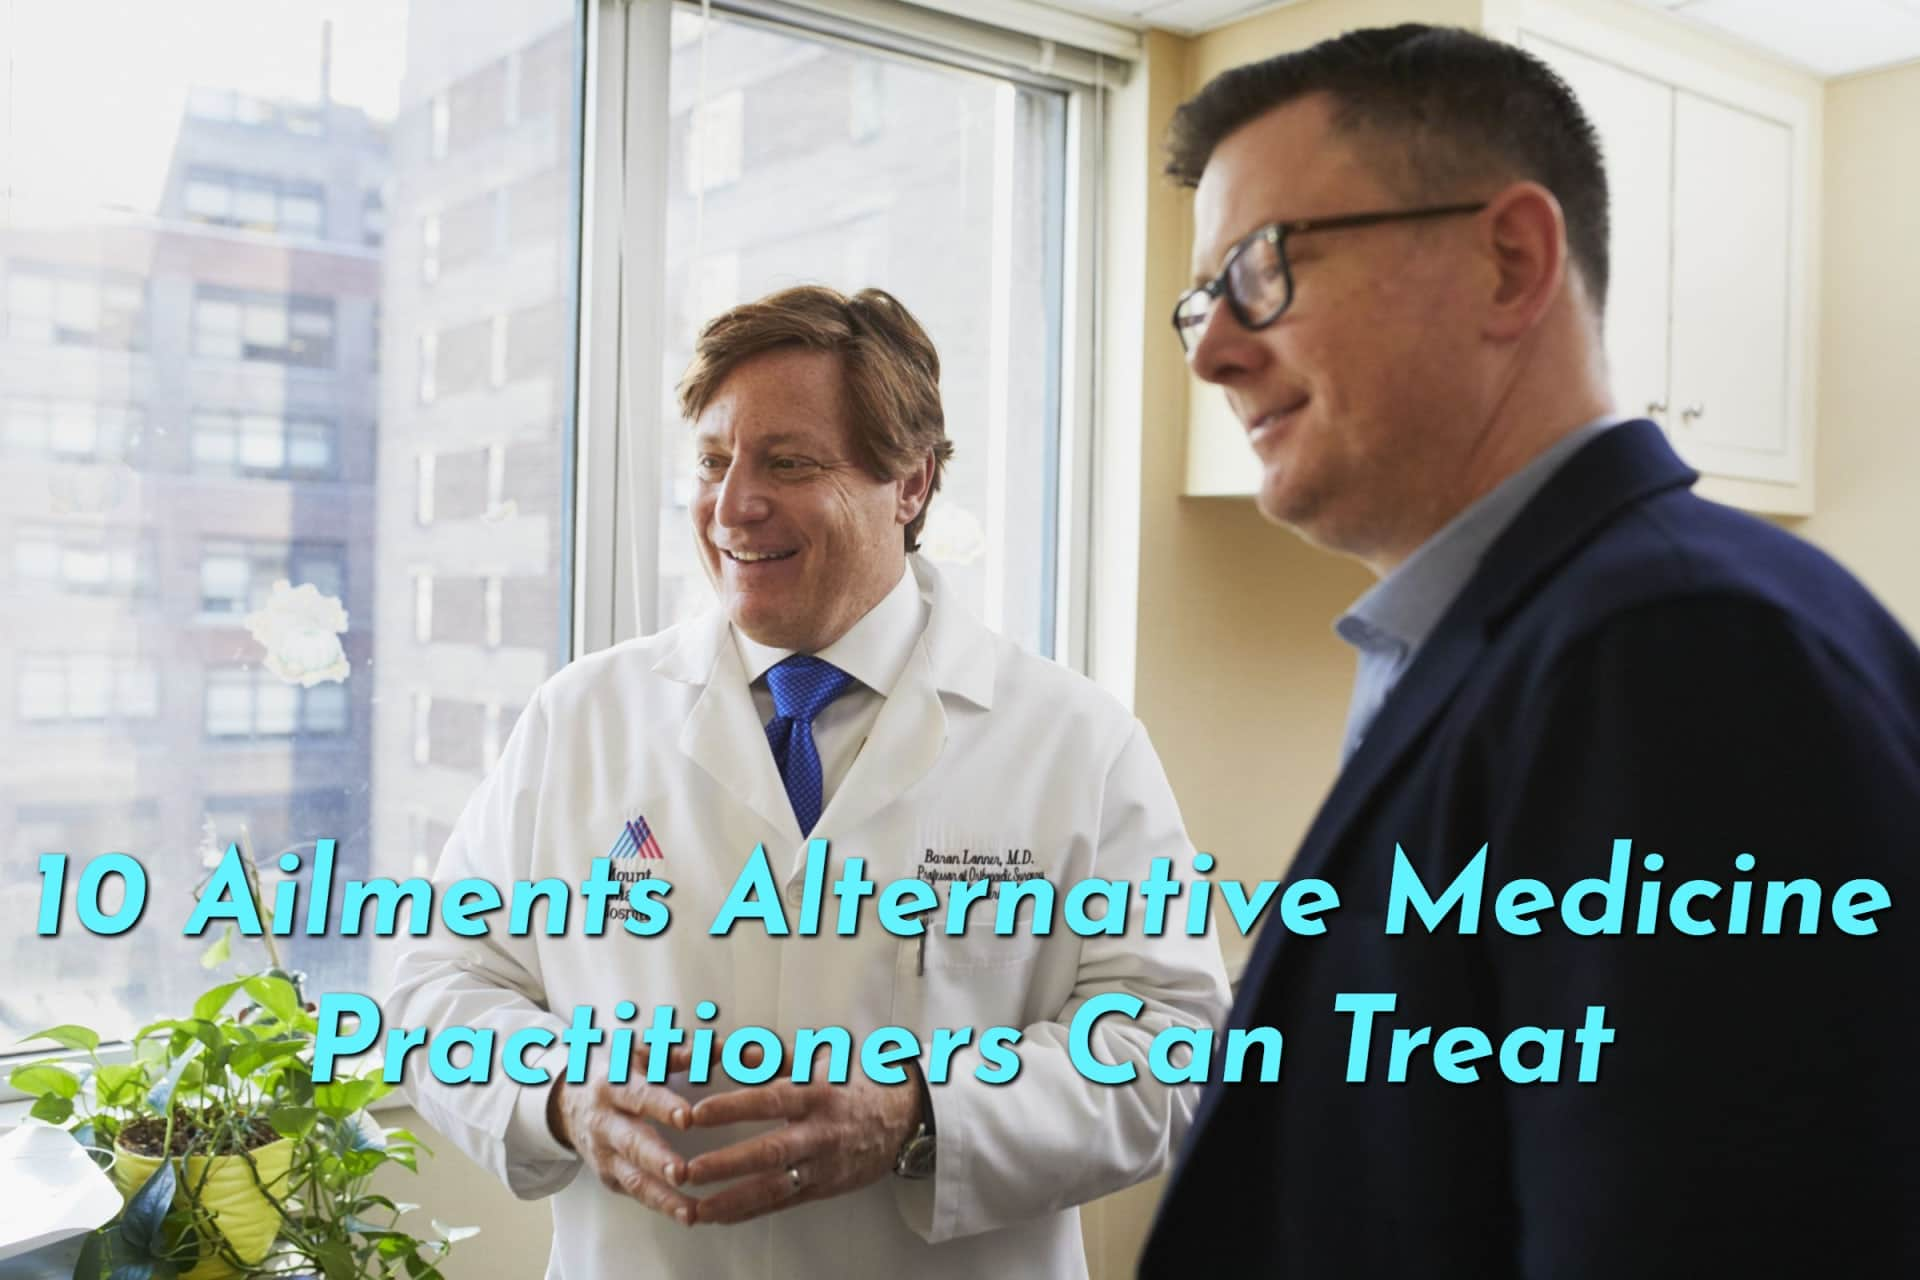 10 Things an Alternative Medicine Practitioner Can Treat